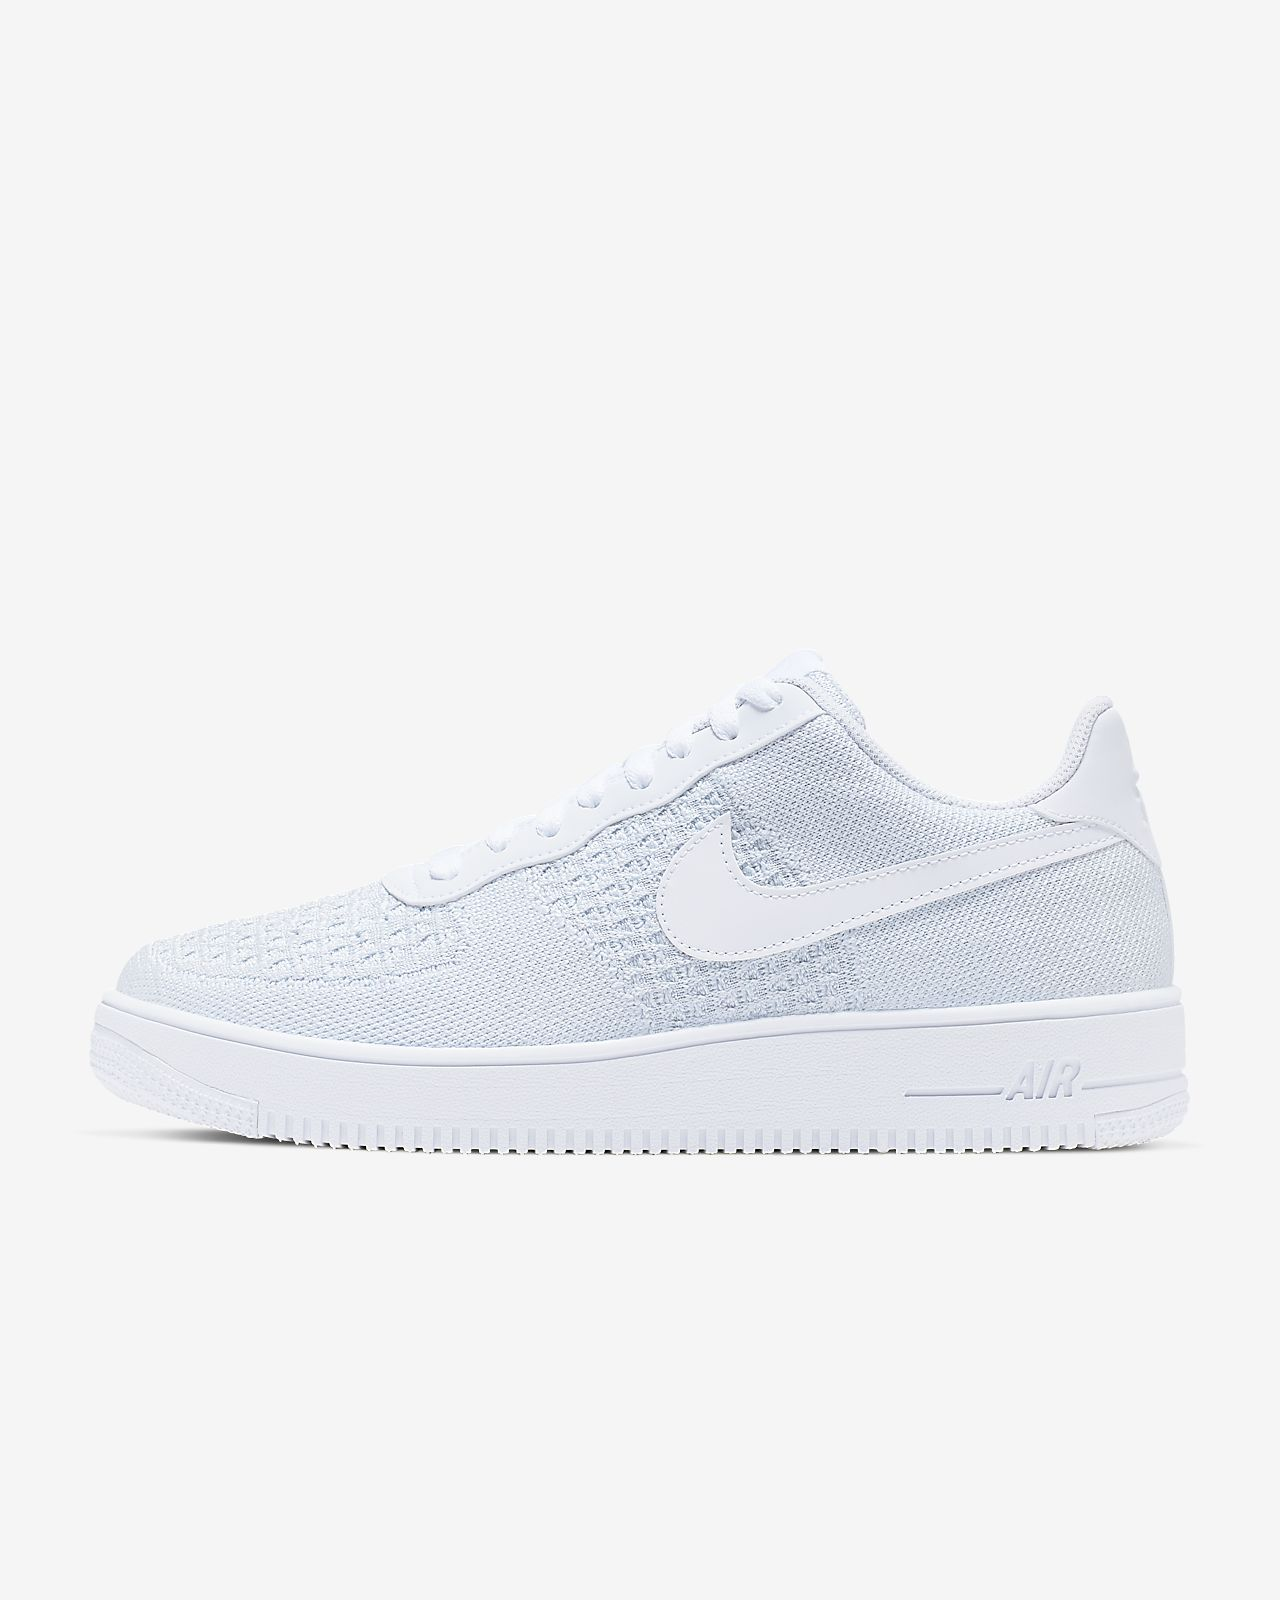 Nike Air 2 Force 1 Shoe Flyknit 0 qVSUzGMp